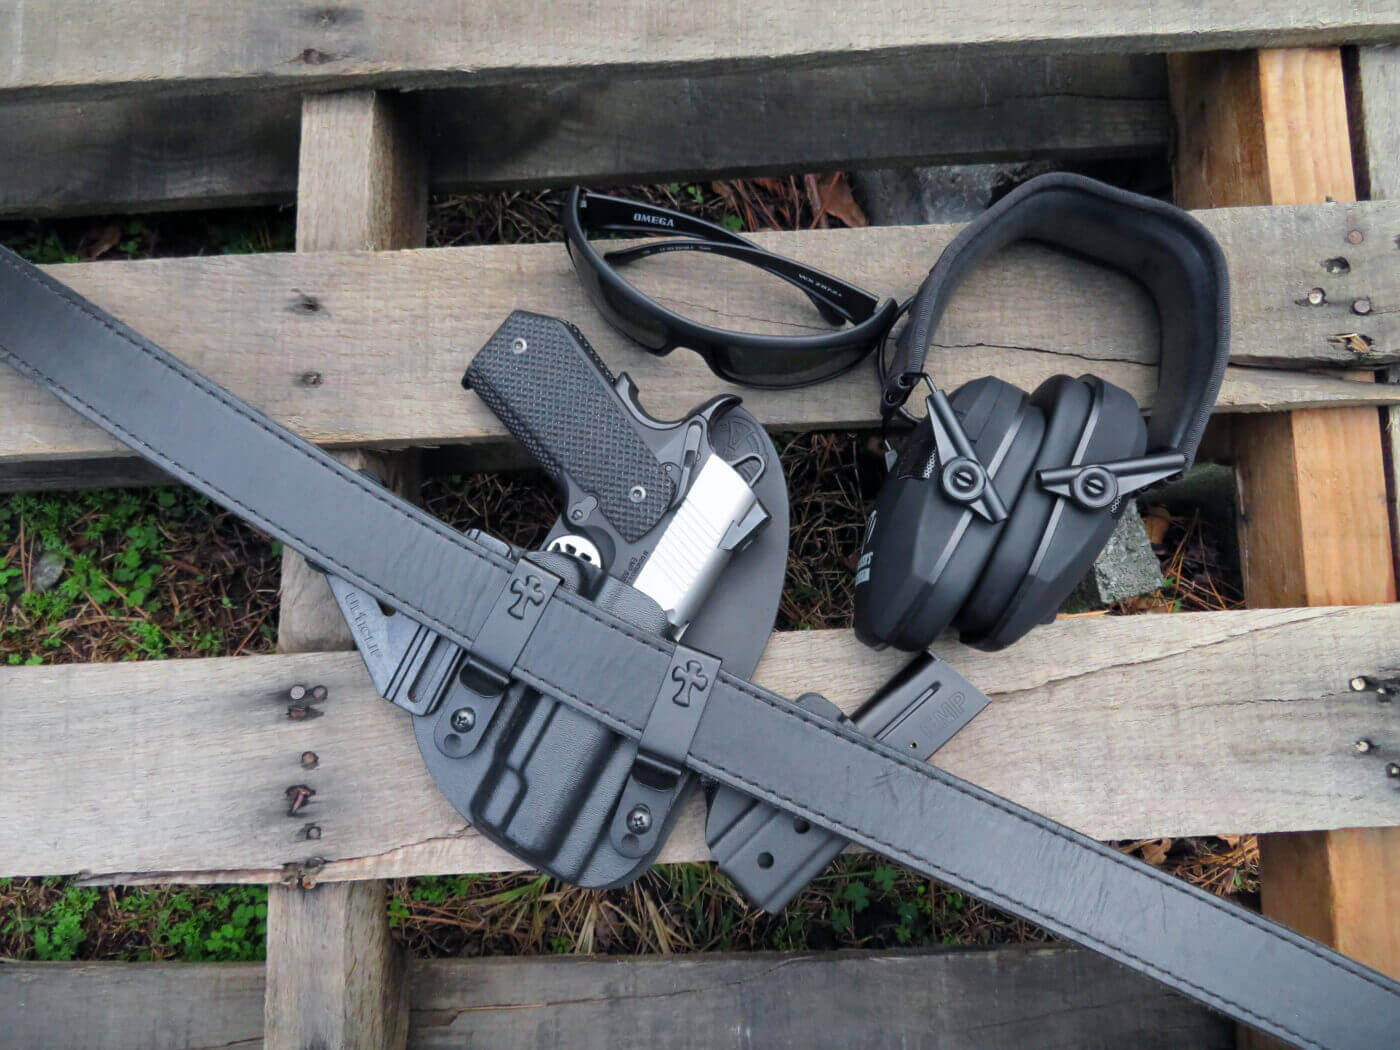 CrossBreed holster and belt with Springfield EMP pistol in belt